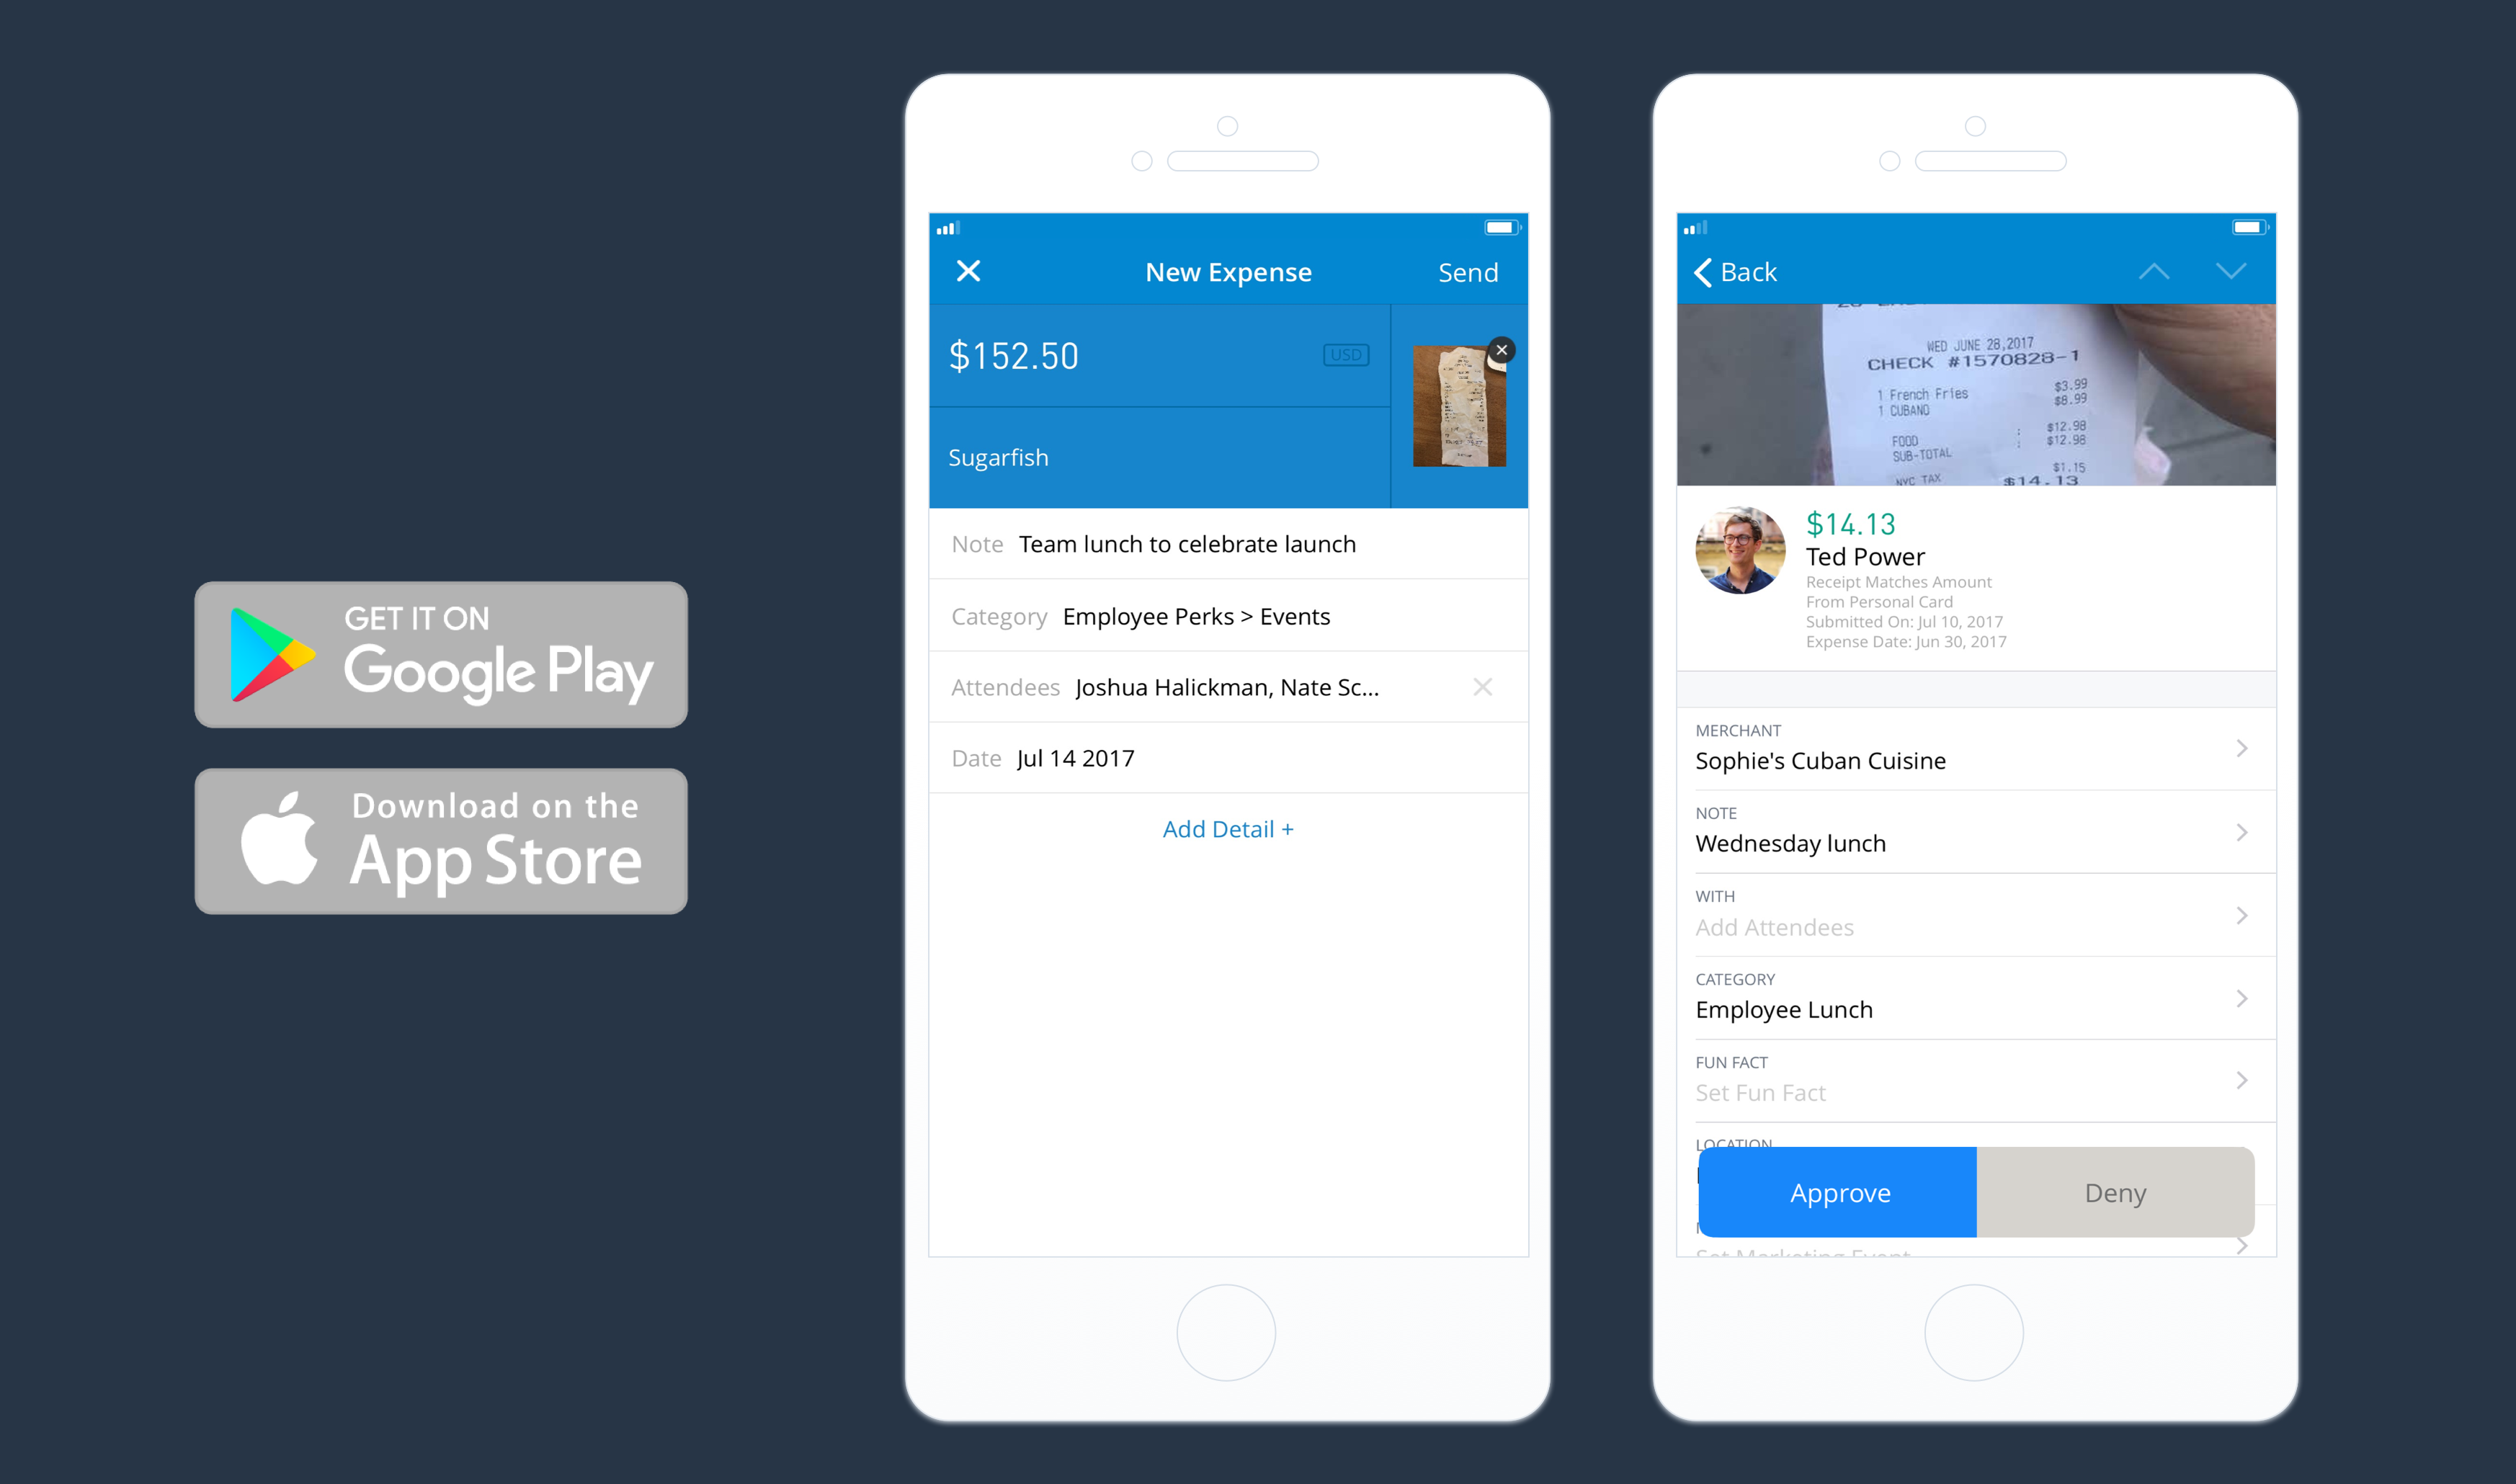 Submit expenses from anywhere, anytime with the Abacus mobile app for iOS and Android.